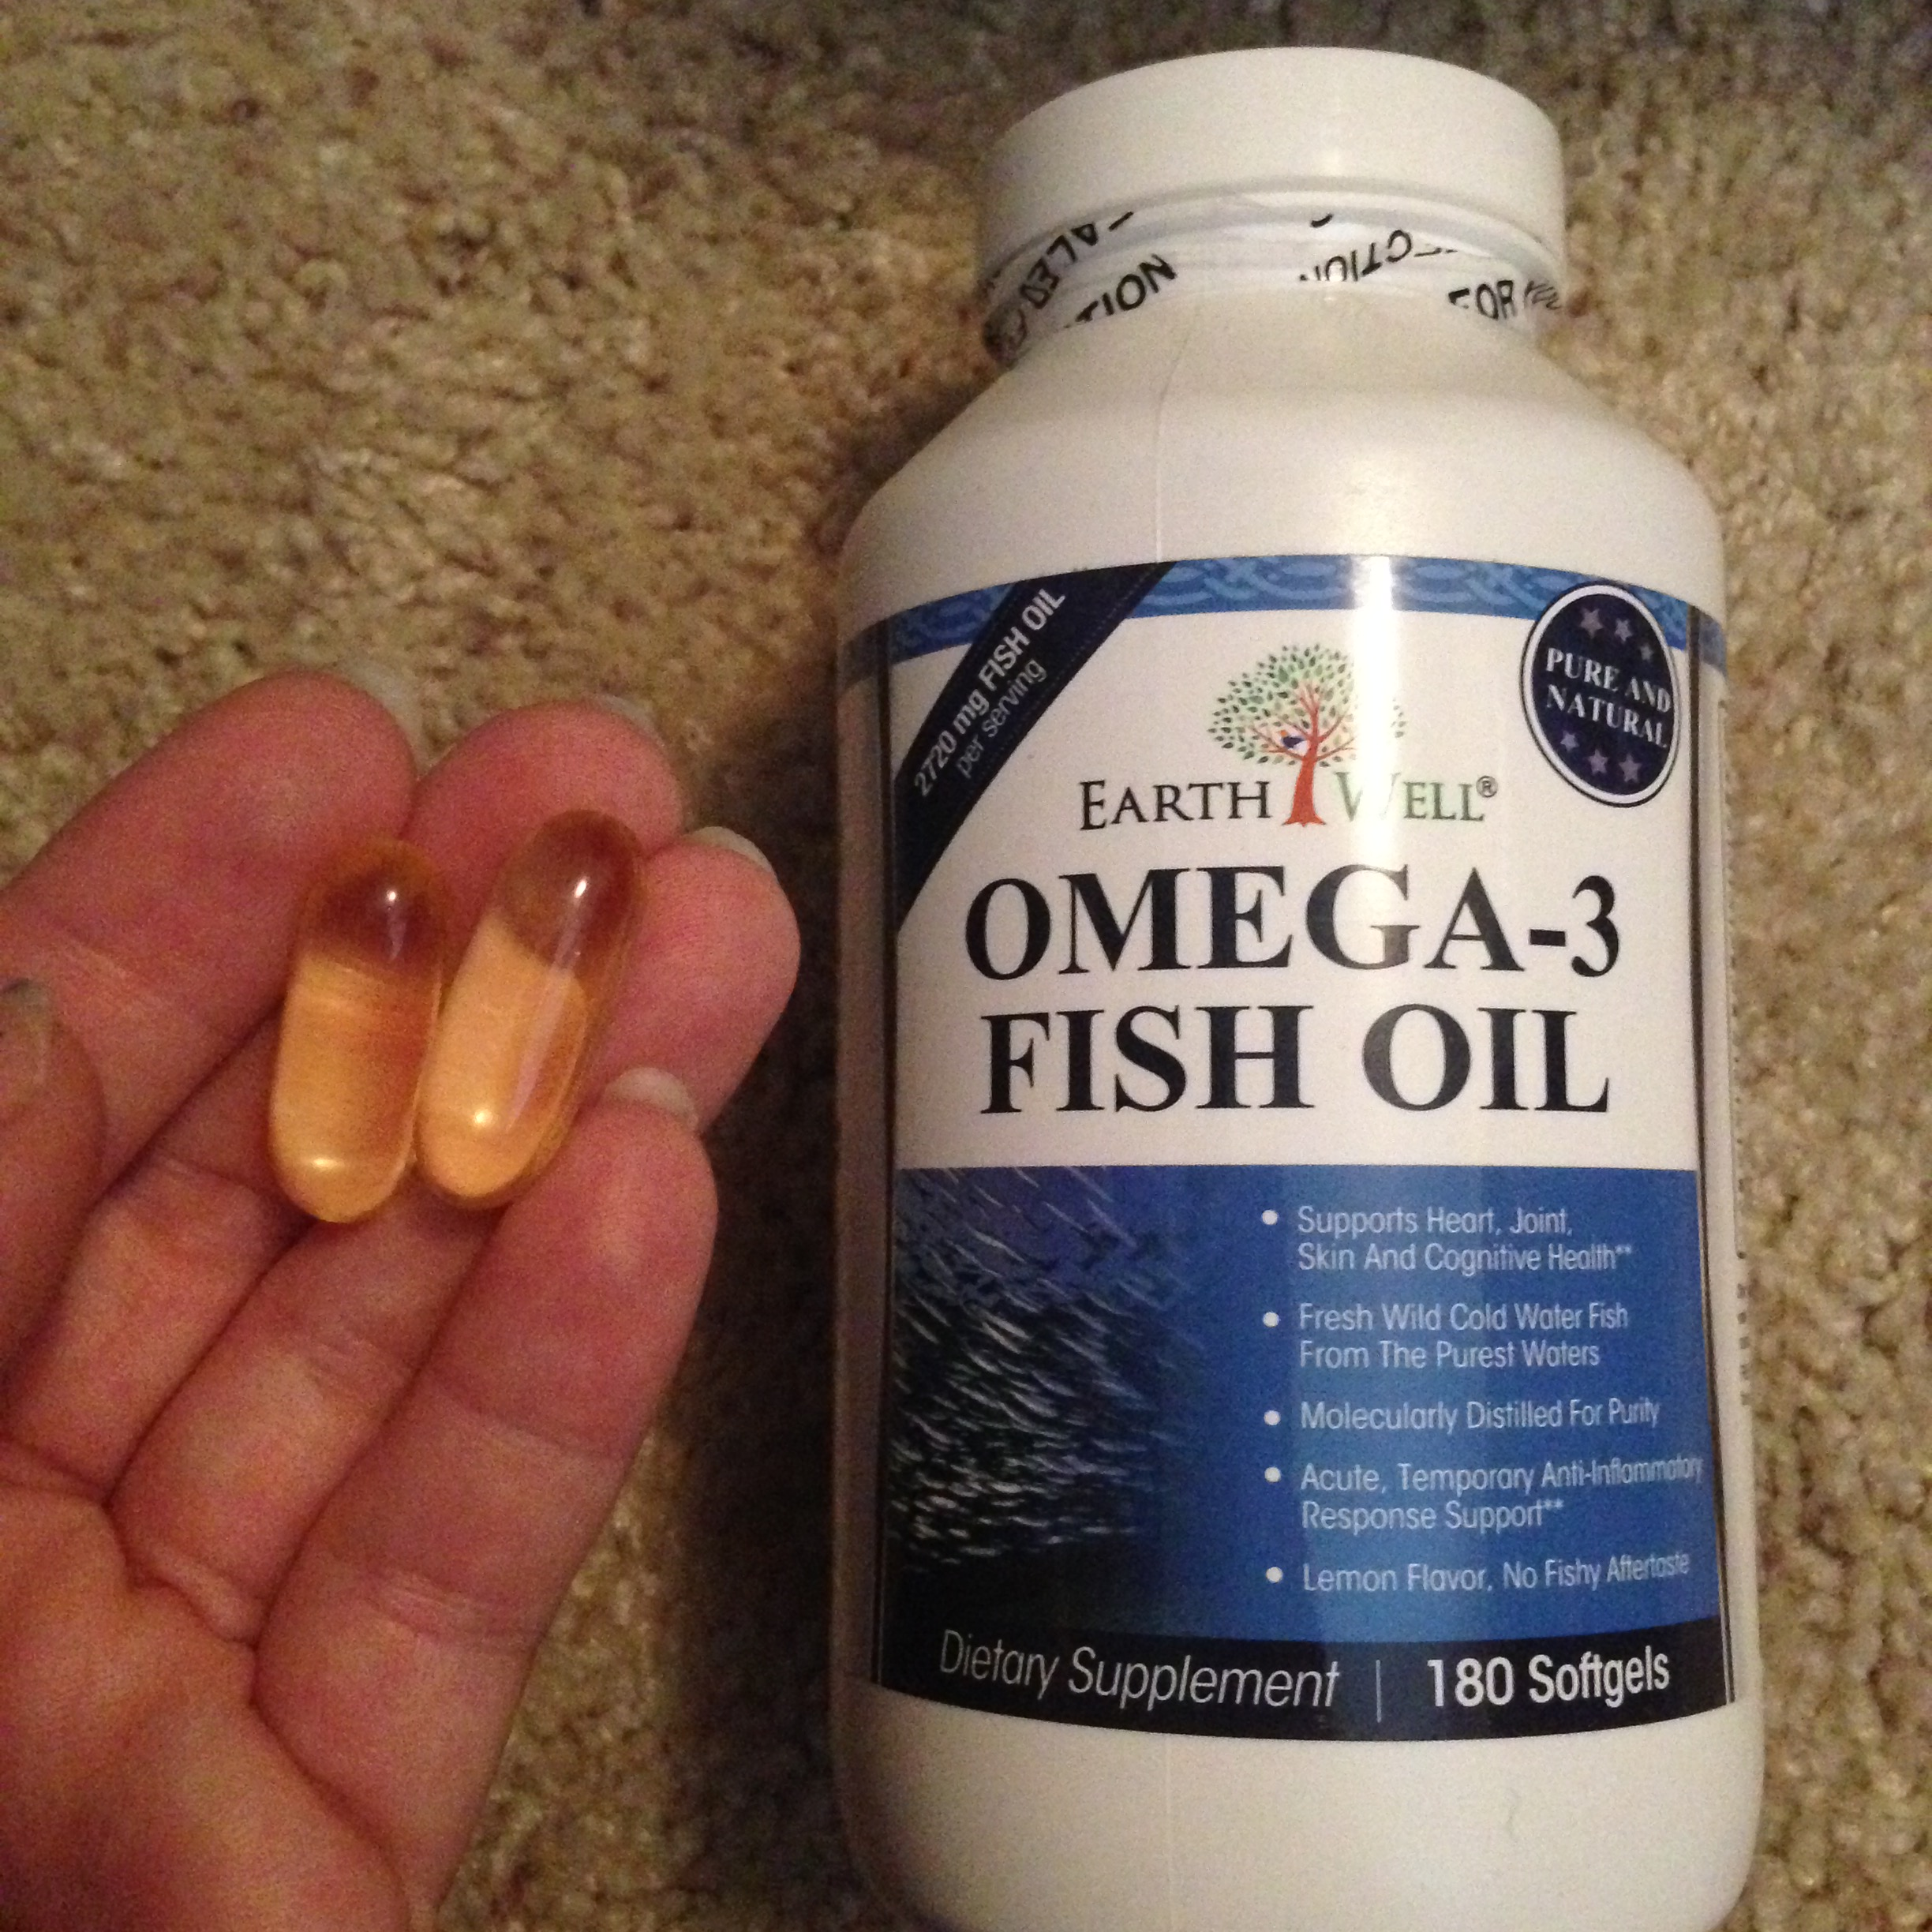 Product review lemon flavored omega 3 fish oil supplement for Omega 3 fish oil weight loss